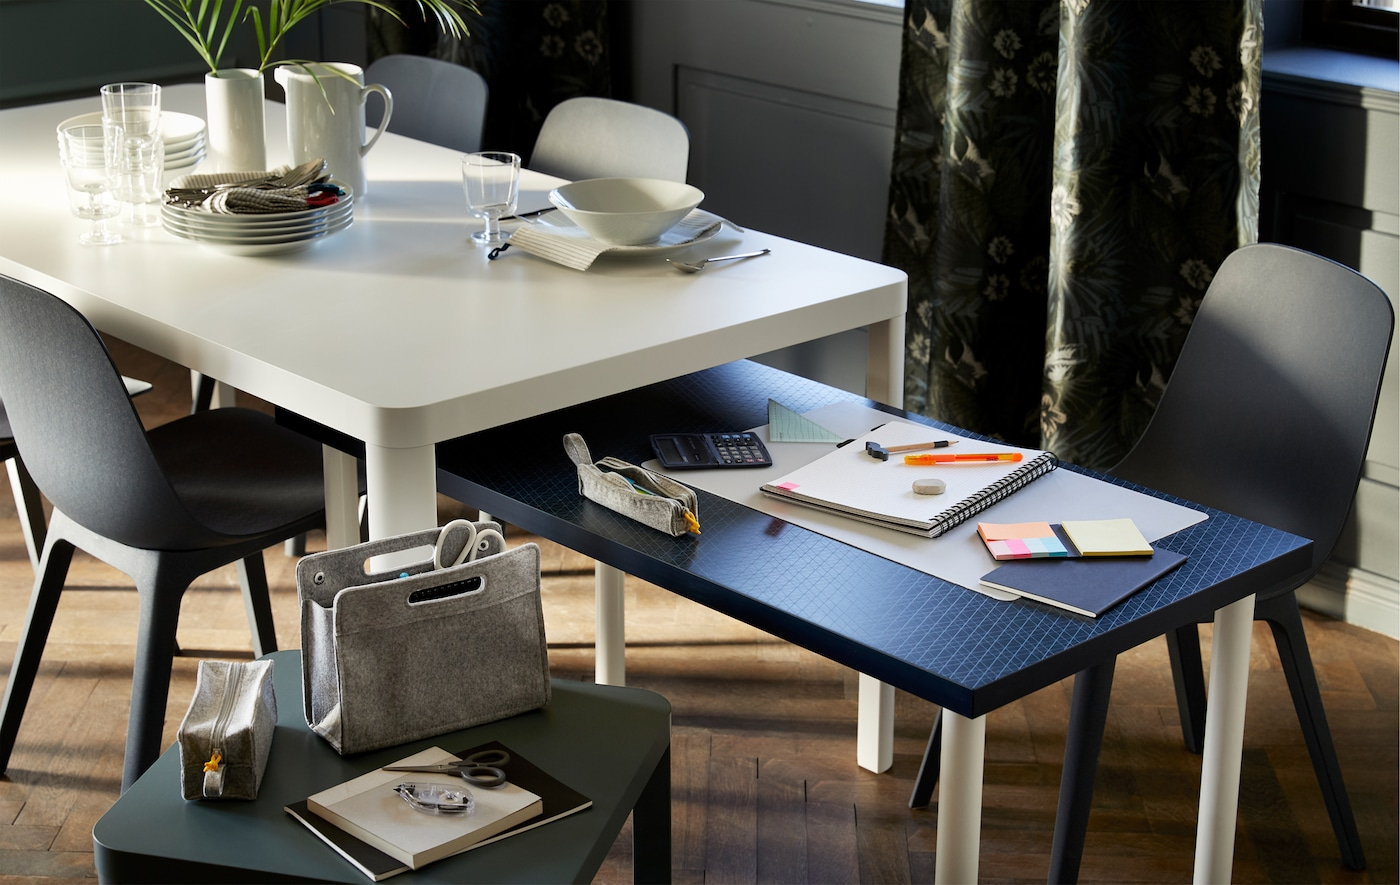 A low table with a blue table top nested underneath a white dining table with chairs surrounding both.